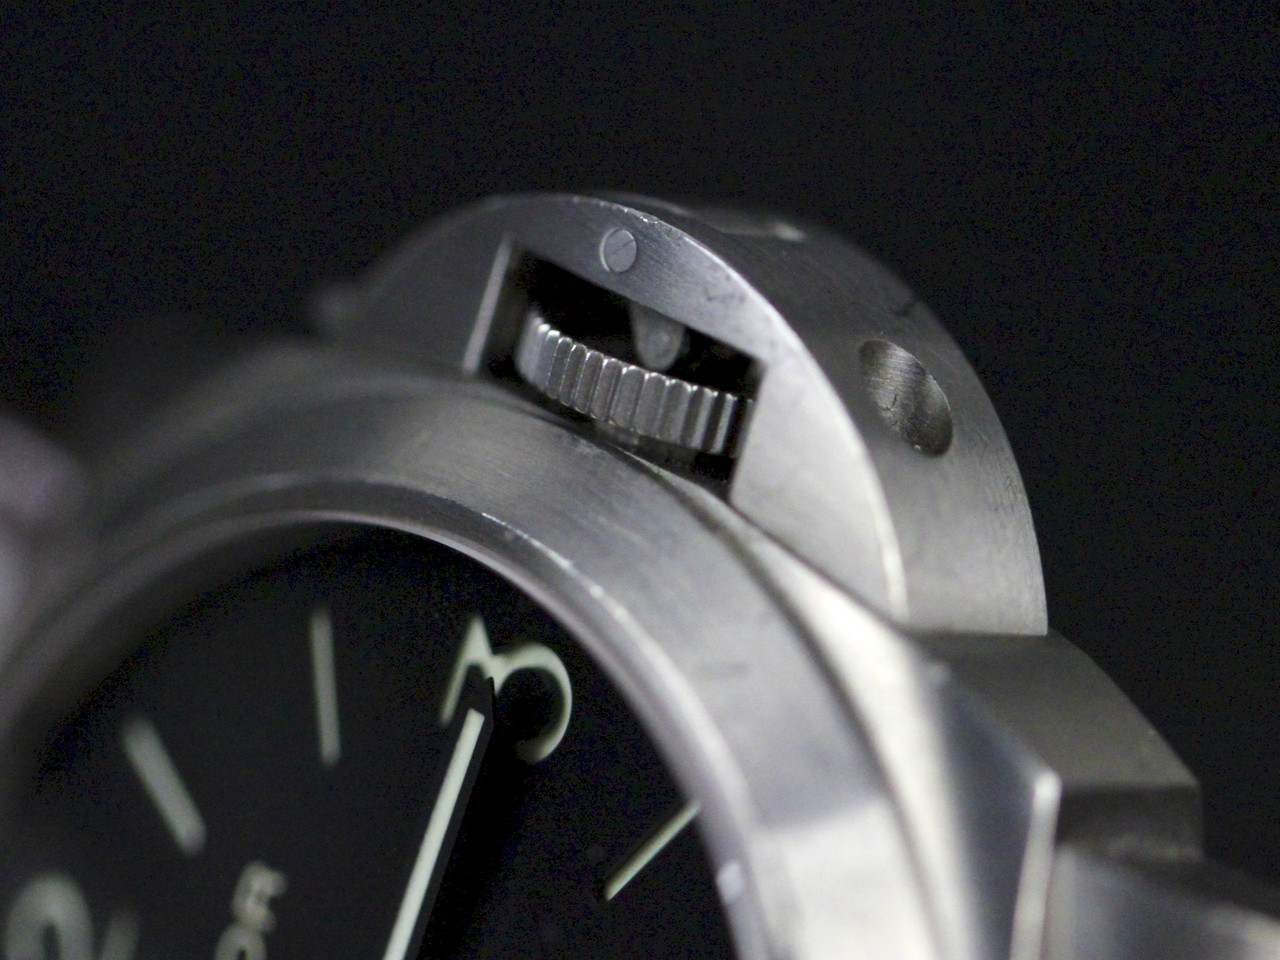 Panerai Trademark Protective Crown Guard - Pre-owned Panerai Watch - Luminor Base PAM00176 Titanium available for sale Legend of Time - Chicago Watch Center